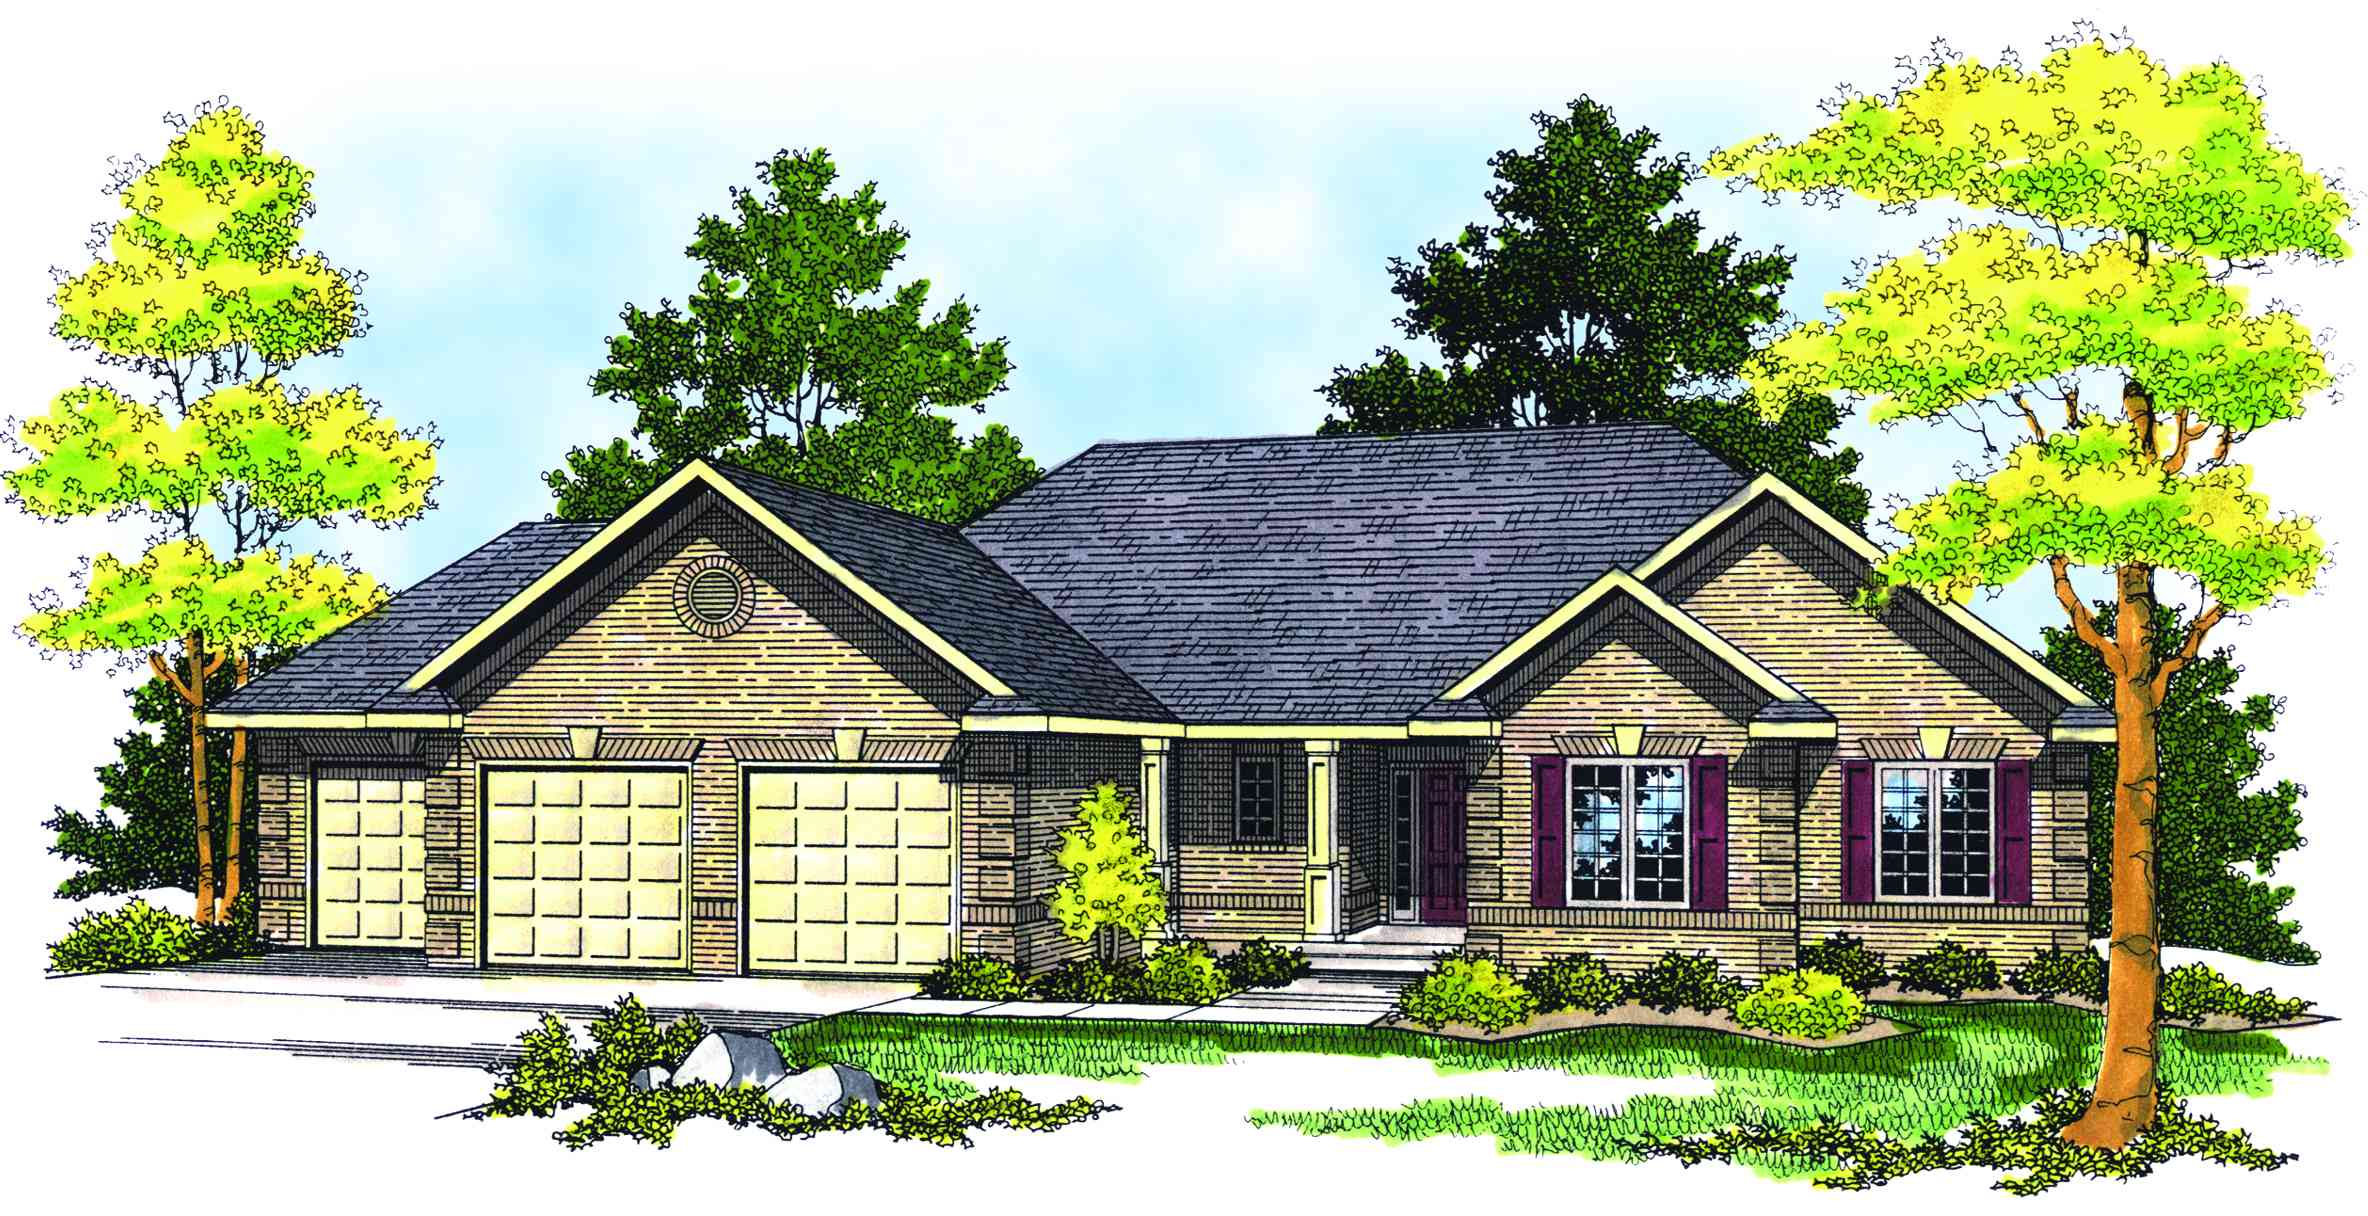 Traditional ranch style home plan 89130ah 1st floor for Traditional ranch homes